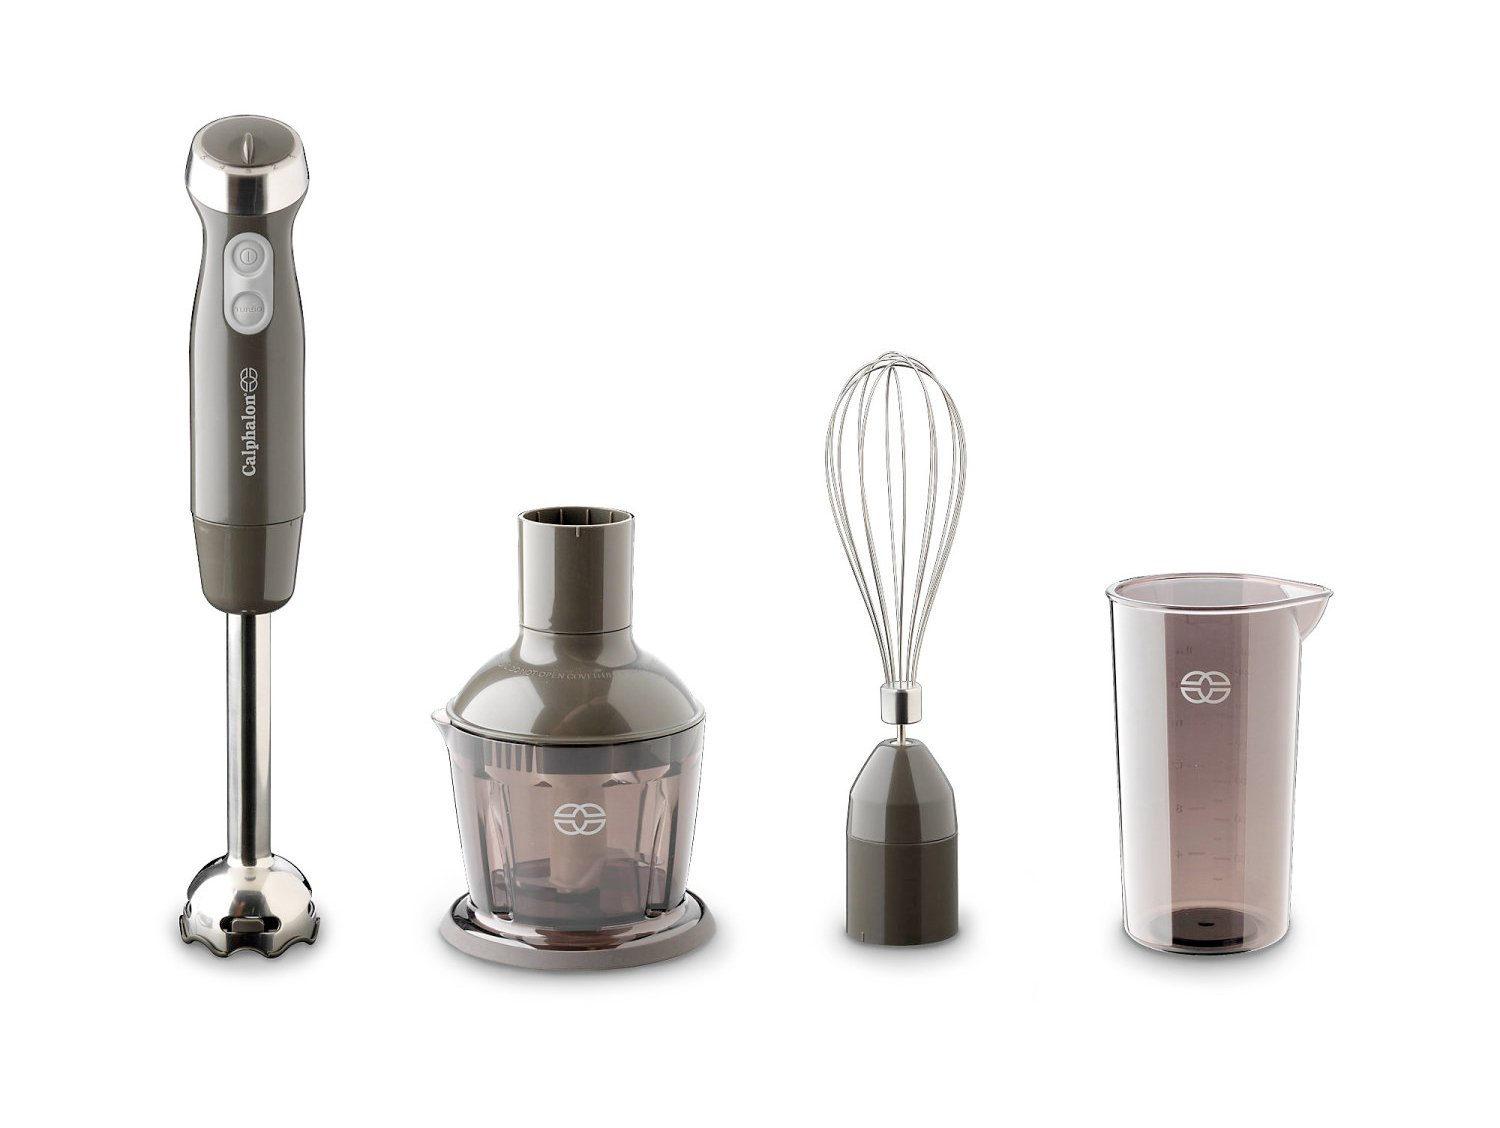 Amazon.com: Calphalon 3-in-1 Immersion Blender: Kitchen & Dining